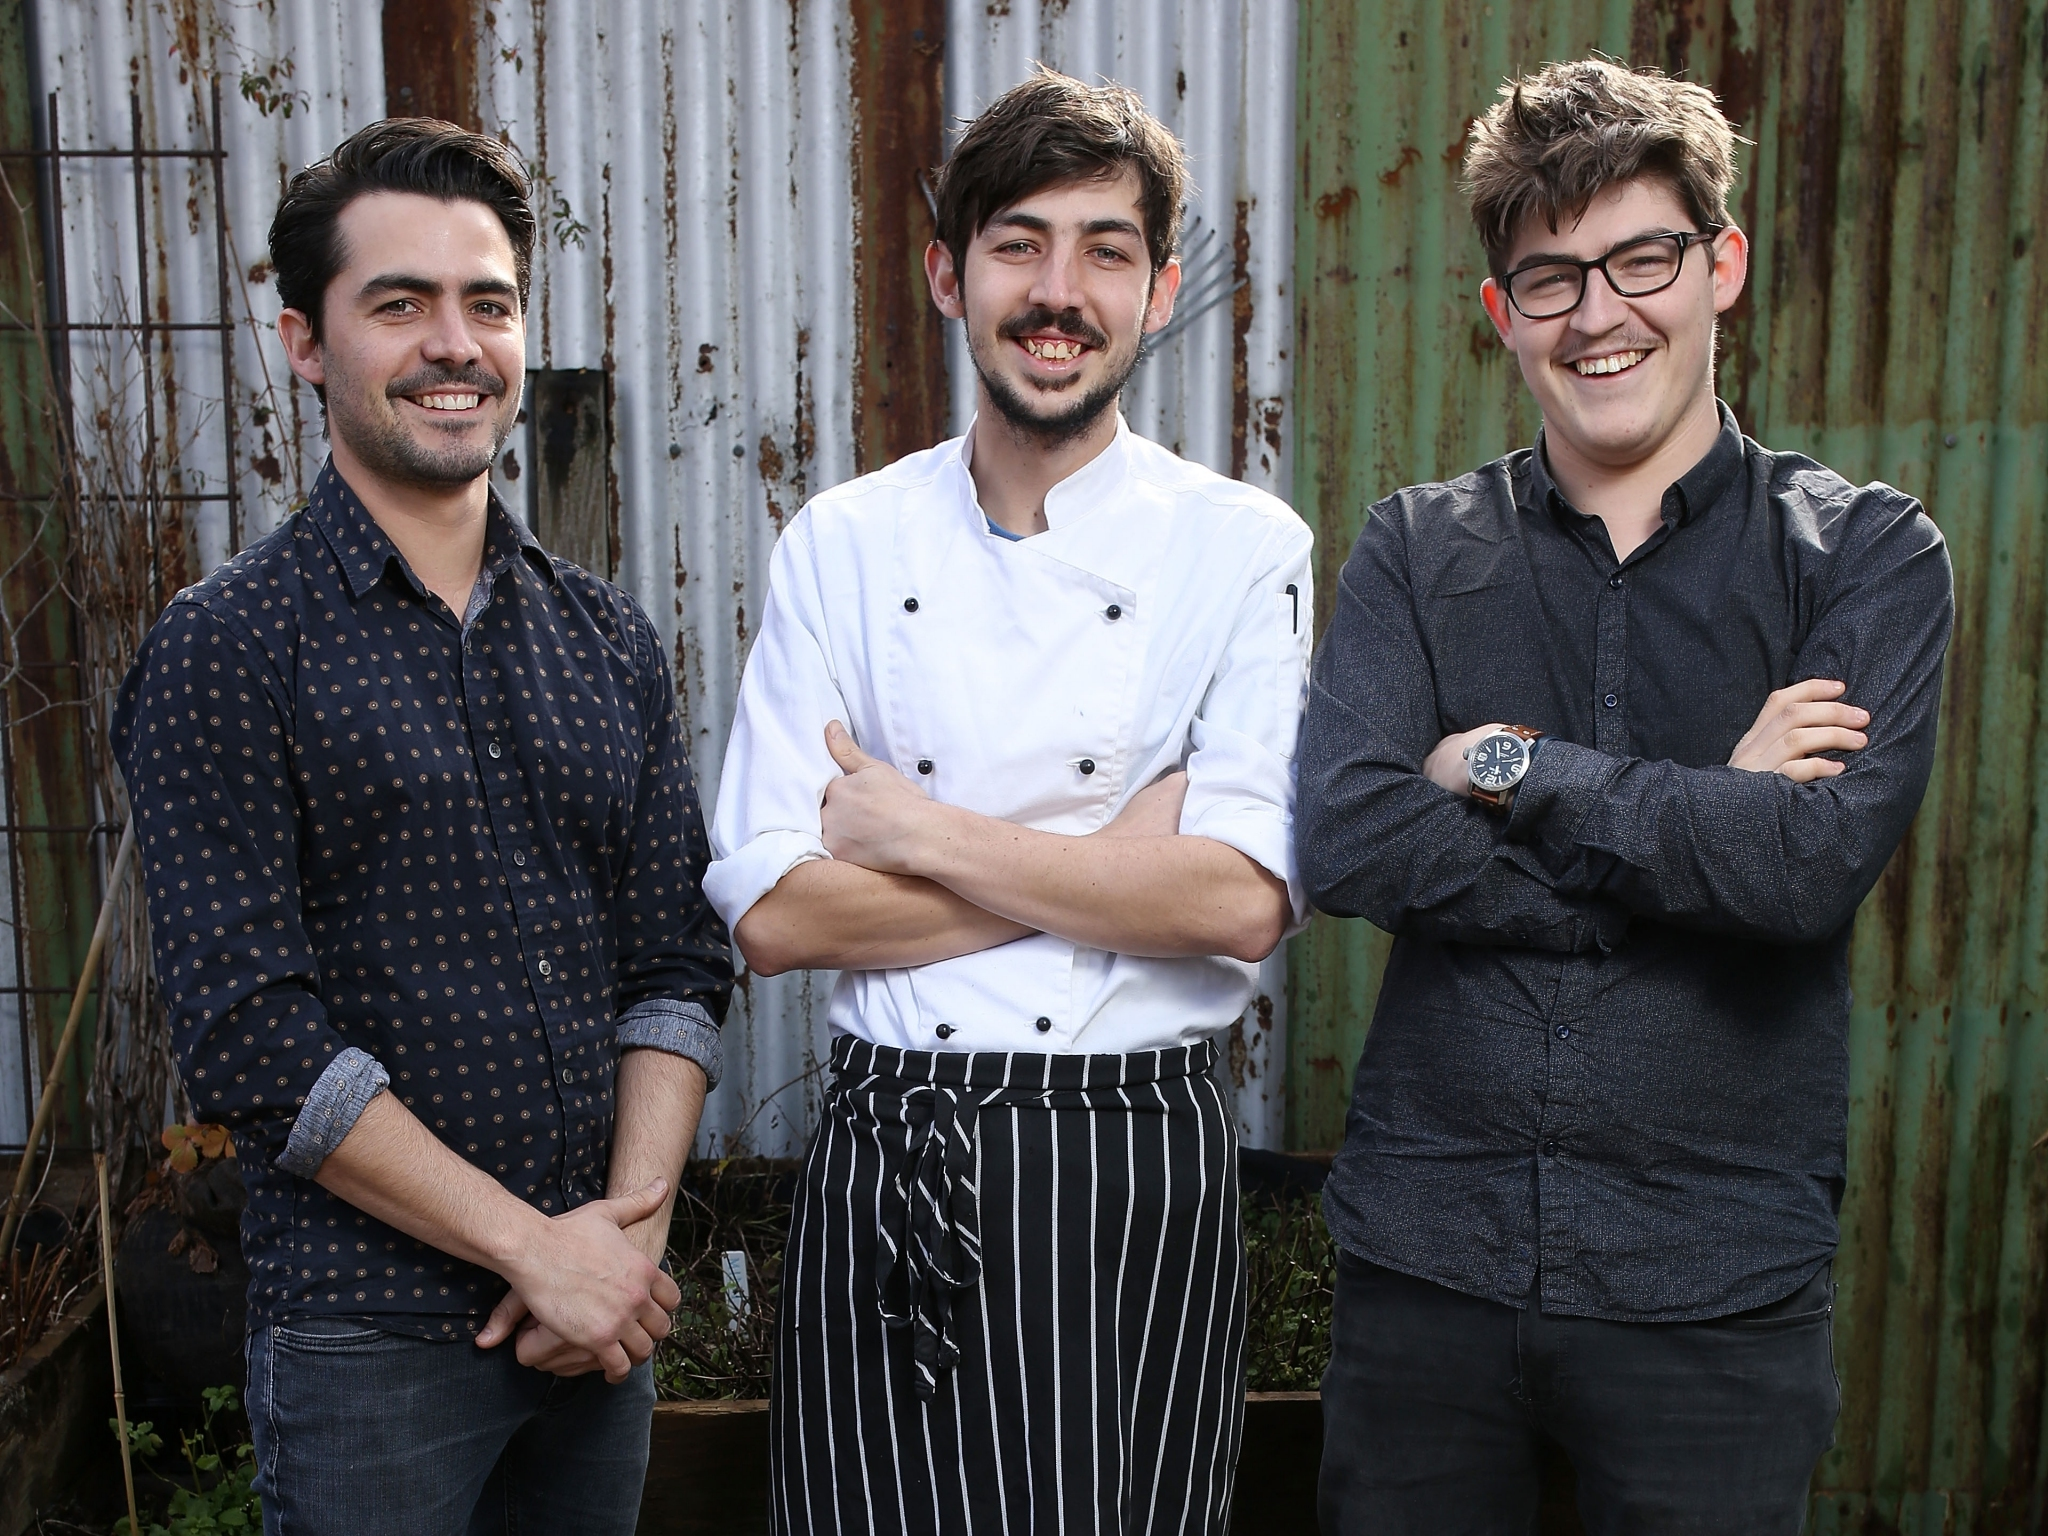 A portrait of brothers Tyson, Chayse and Blayne Bertoncello from O.My restaurant in Beaconsfield